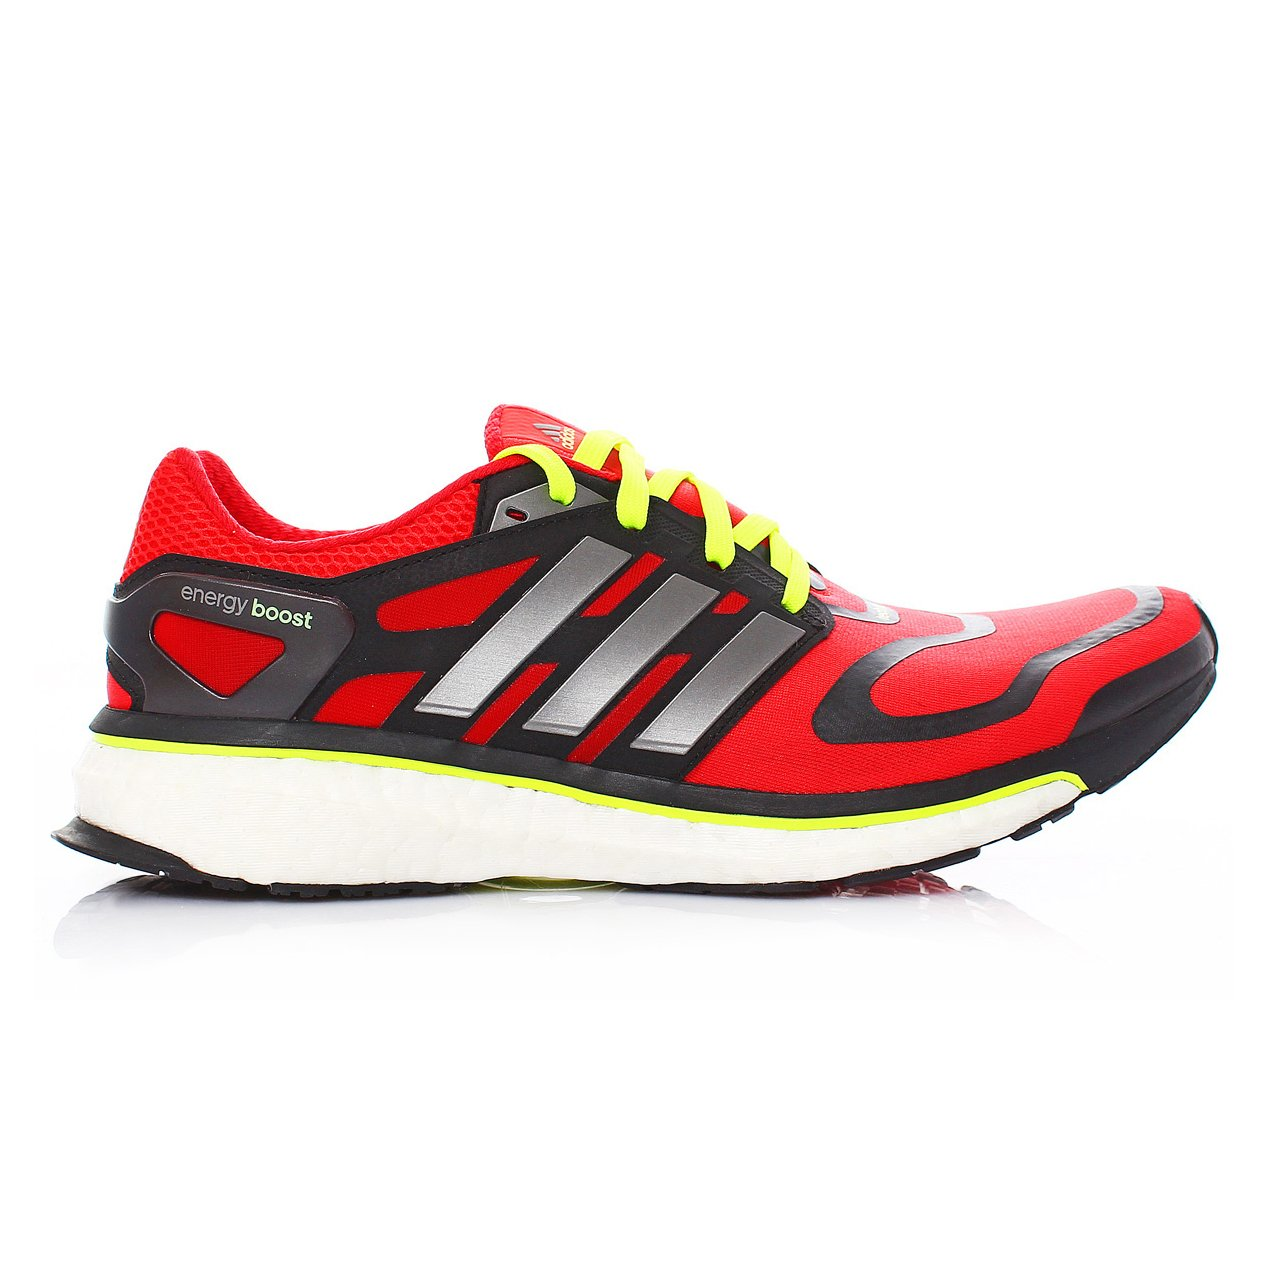 AS1 adidas energy boost m Herren Sportschuhe G65075 Gr. 41 1